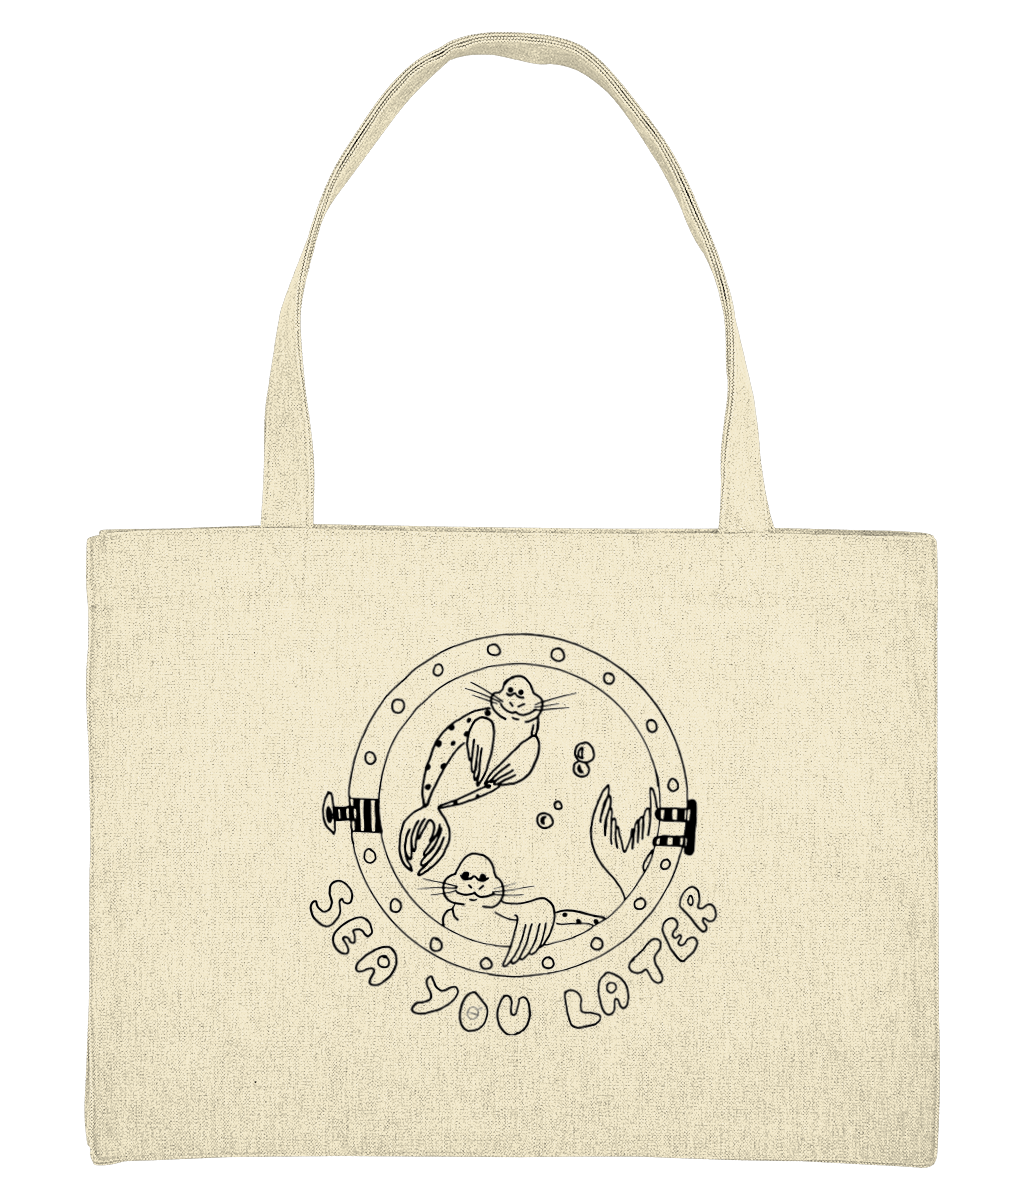 Seals, sea you later - Bag - [variant_title] - 100% cotton - Banshy